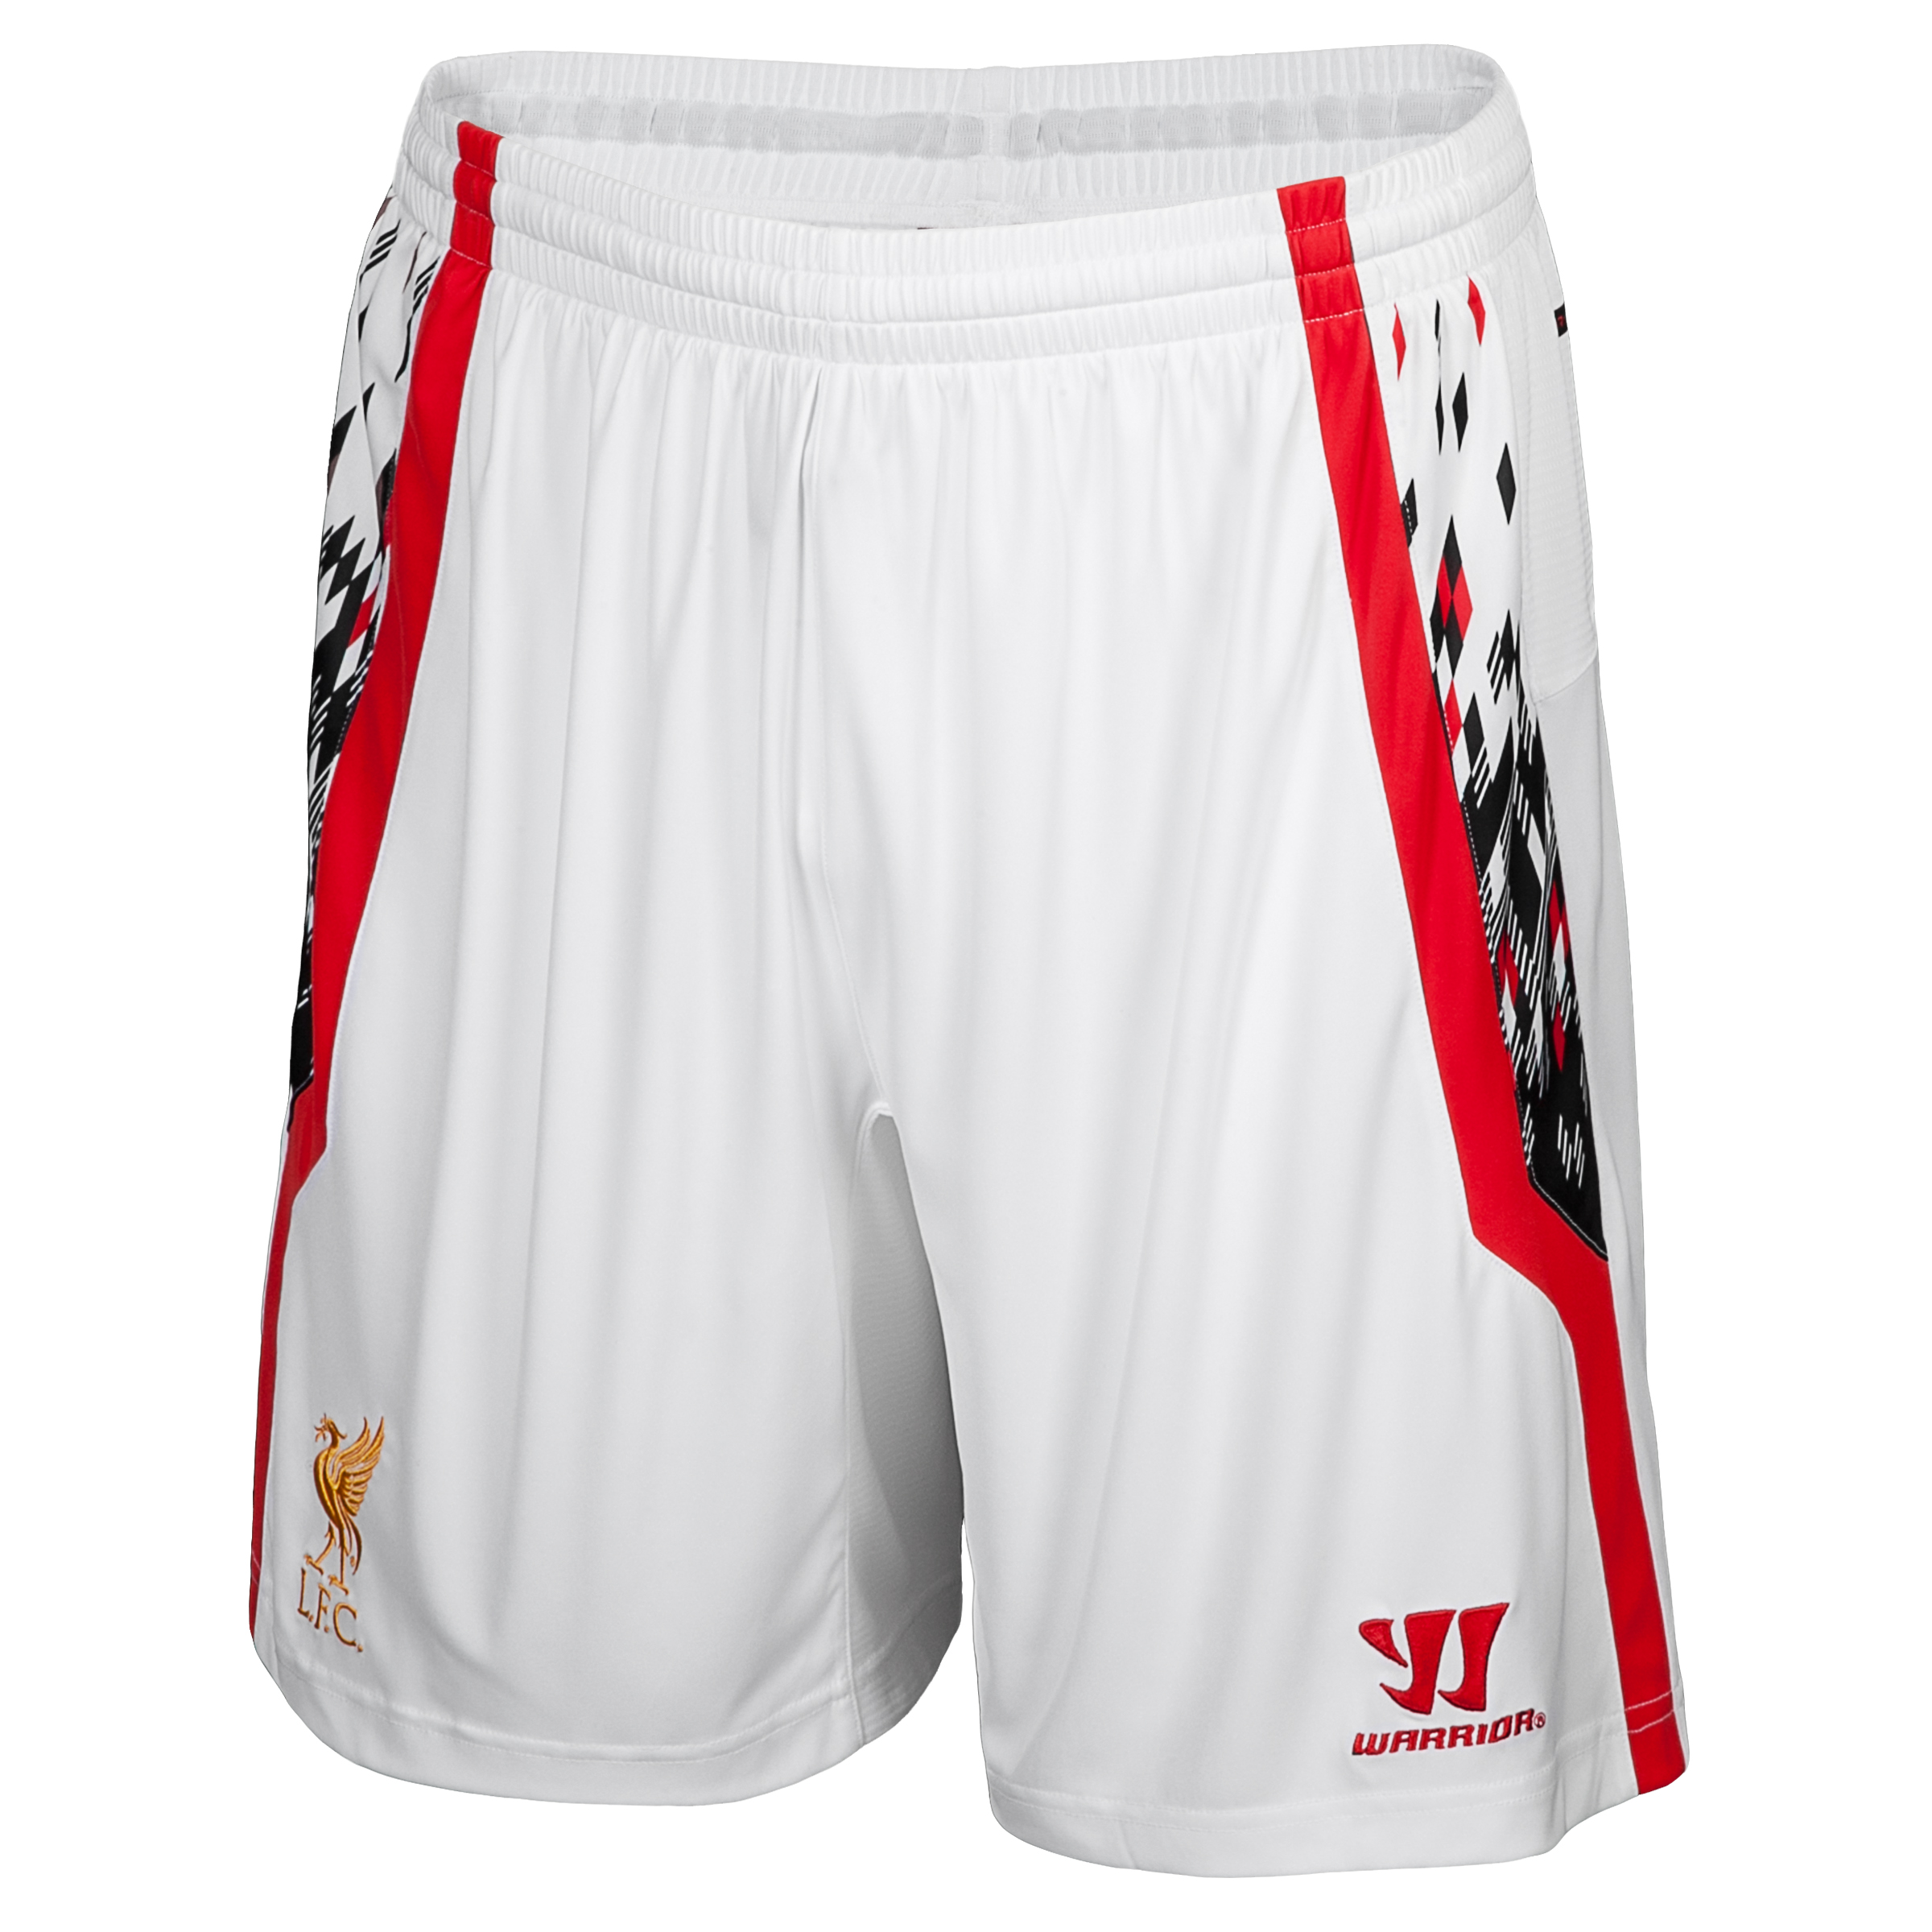 Liverpool Away Change Shorts 2013/14